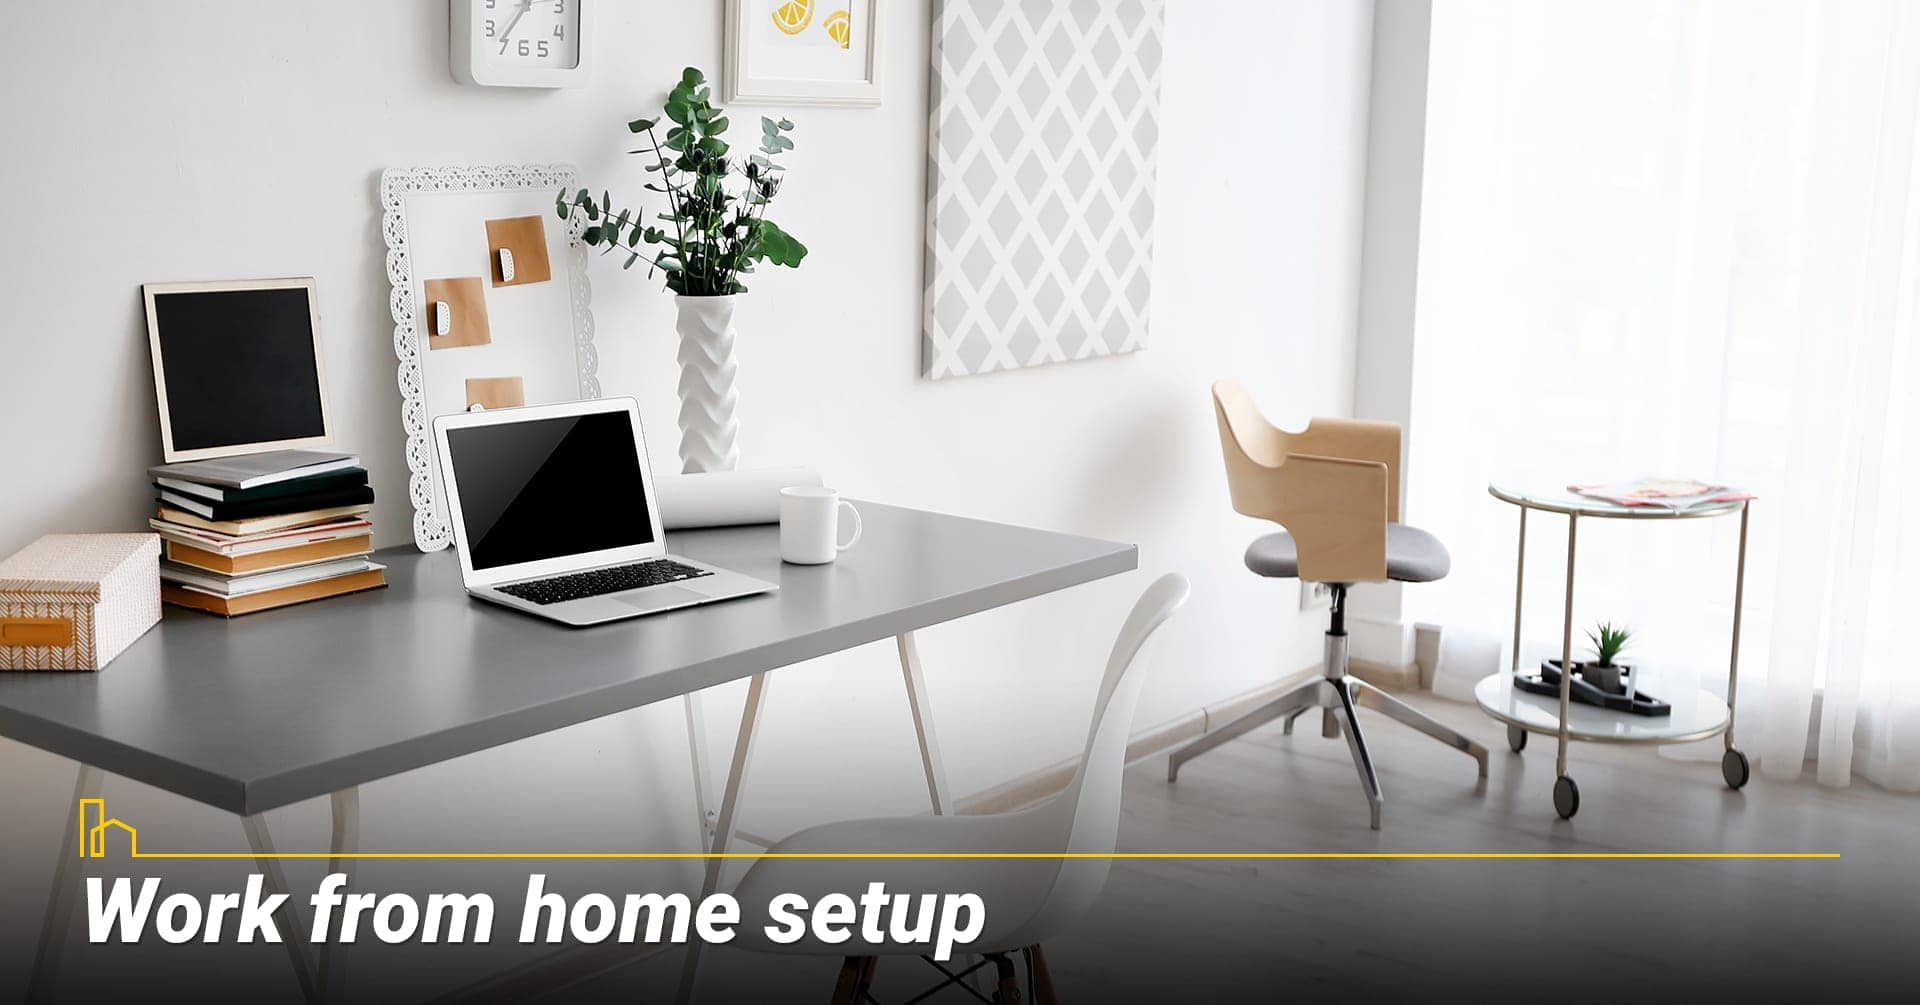 Work from home setup, set up a place to work